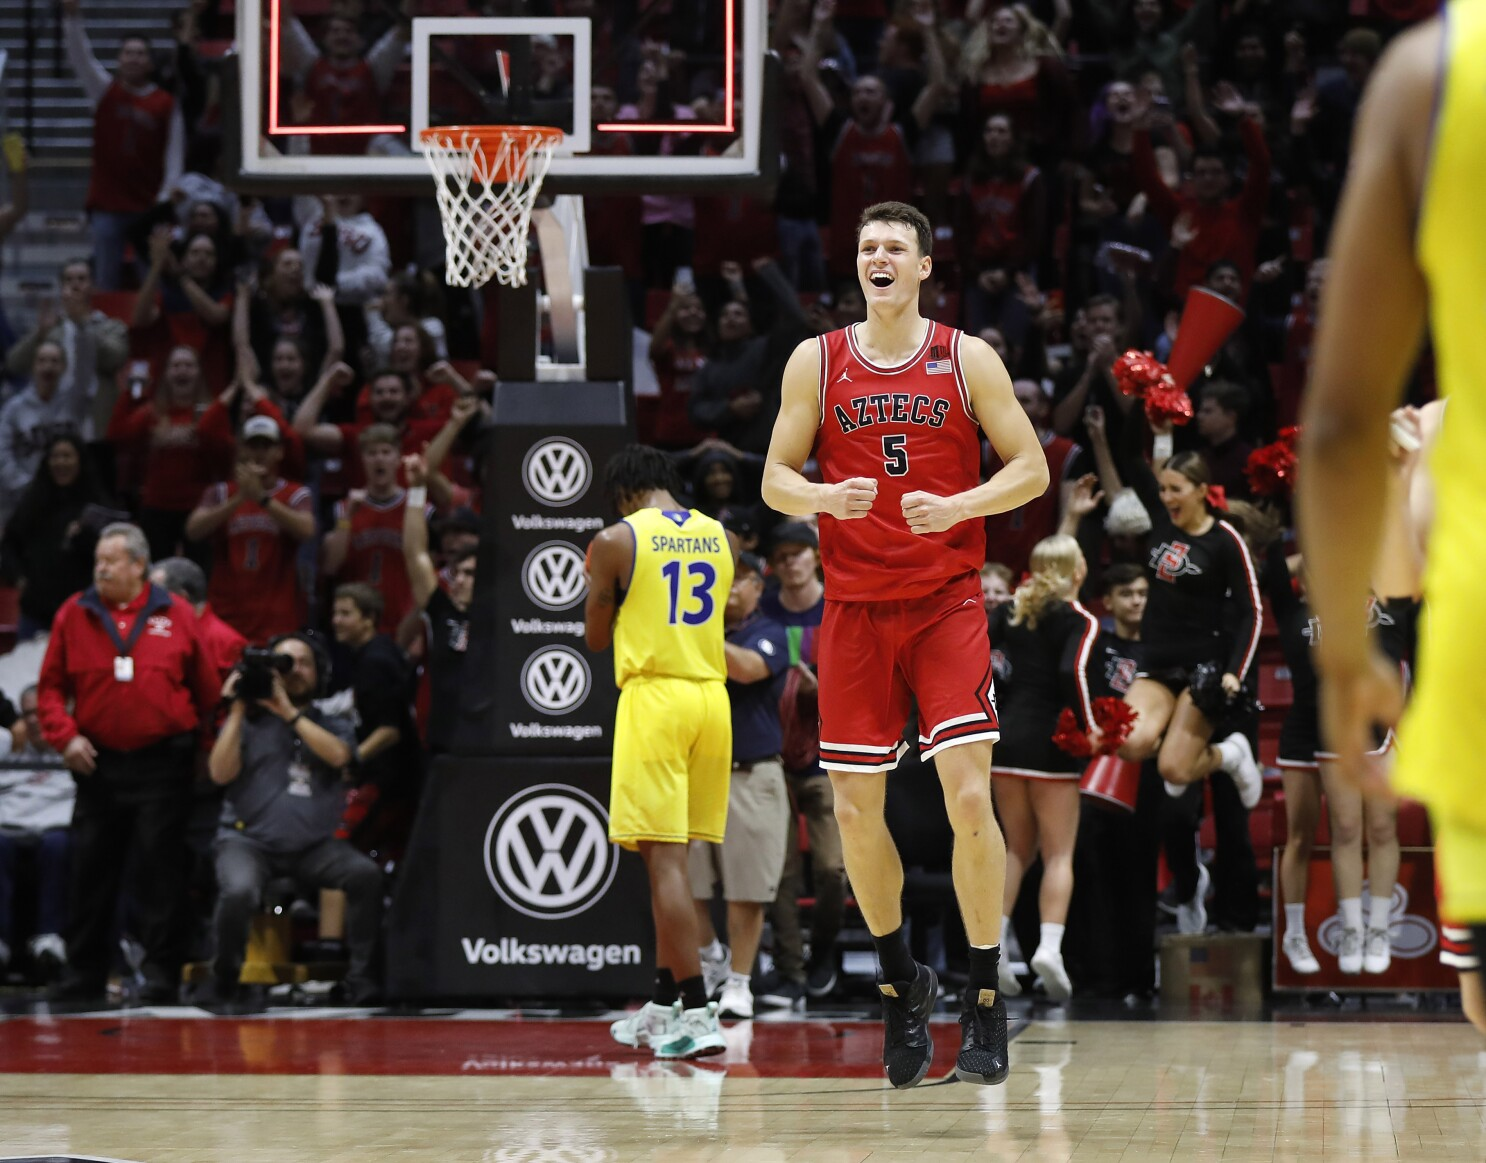 3 thoughts on San Diego State 59, San Jose State 57